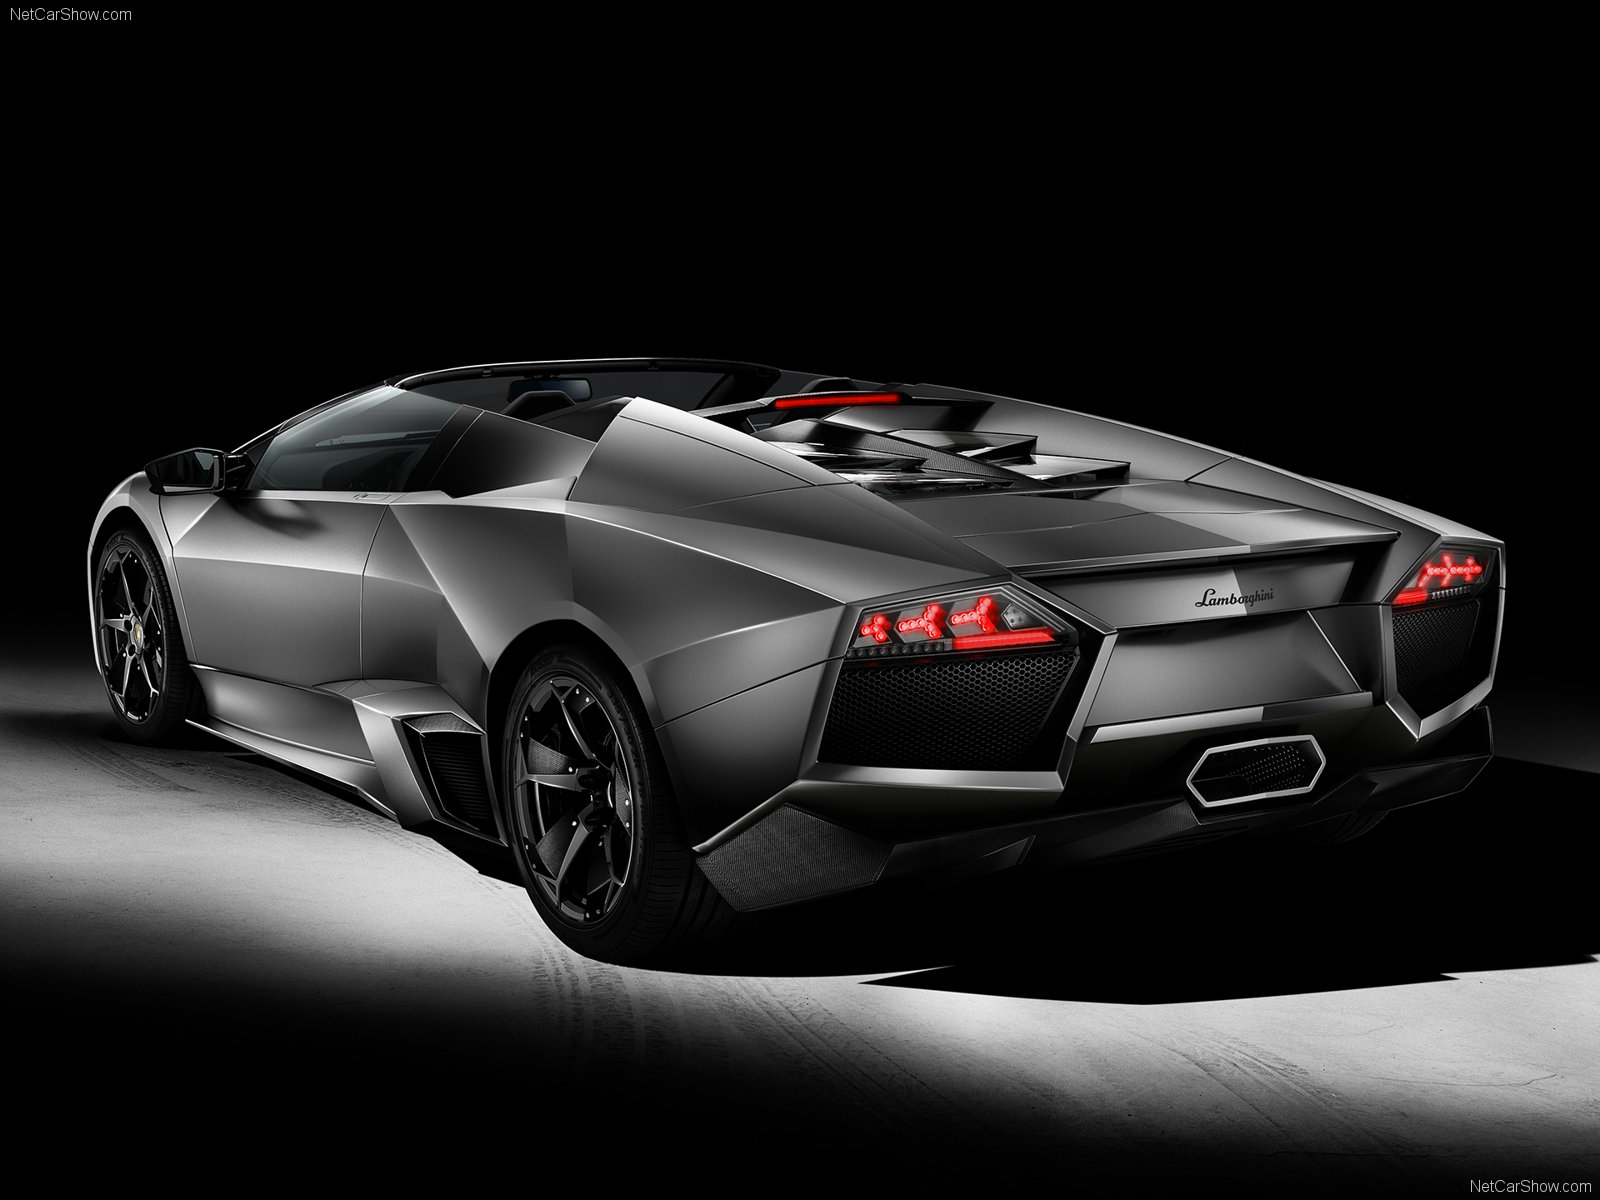 lamborghini wallpaper hd lamborghini reventon wallpaper. Black Bedroom Furniture Sets. Home Design Ideas